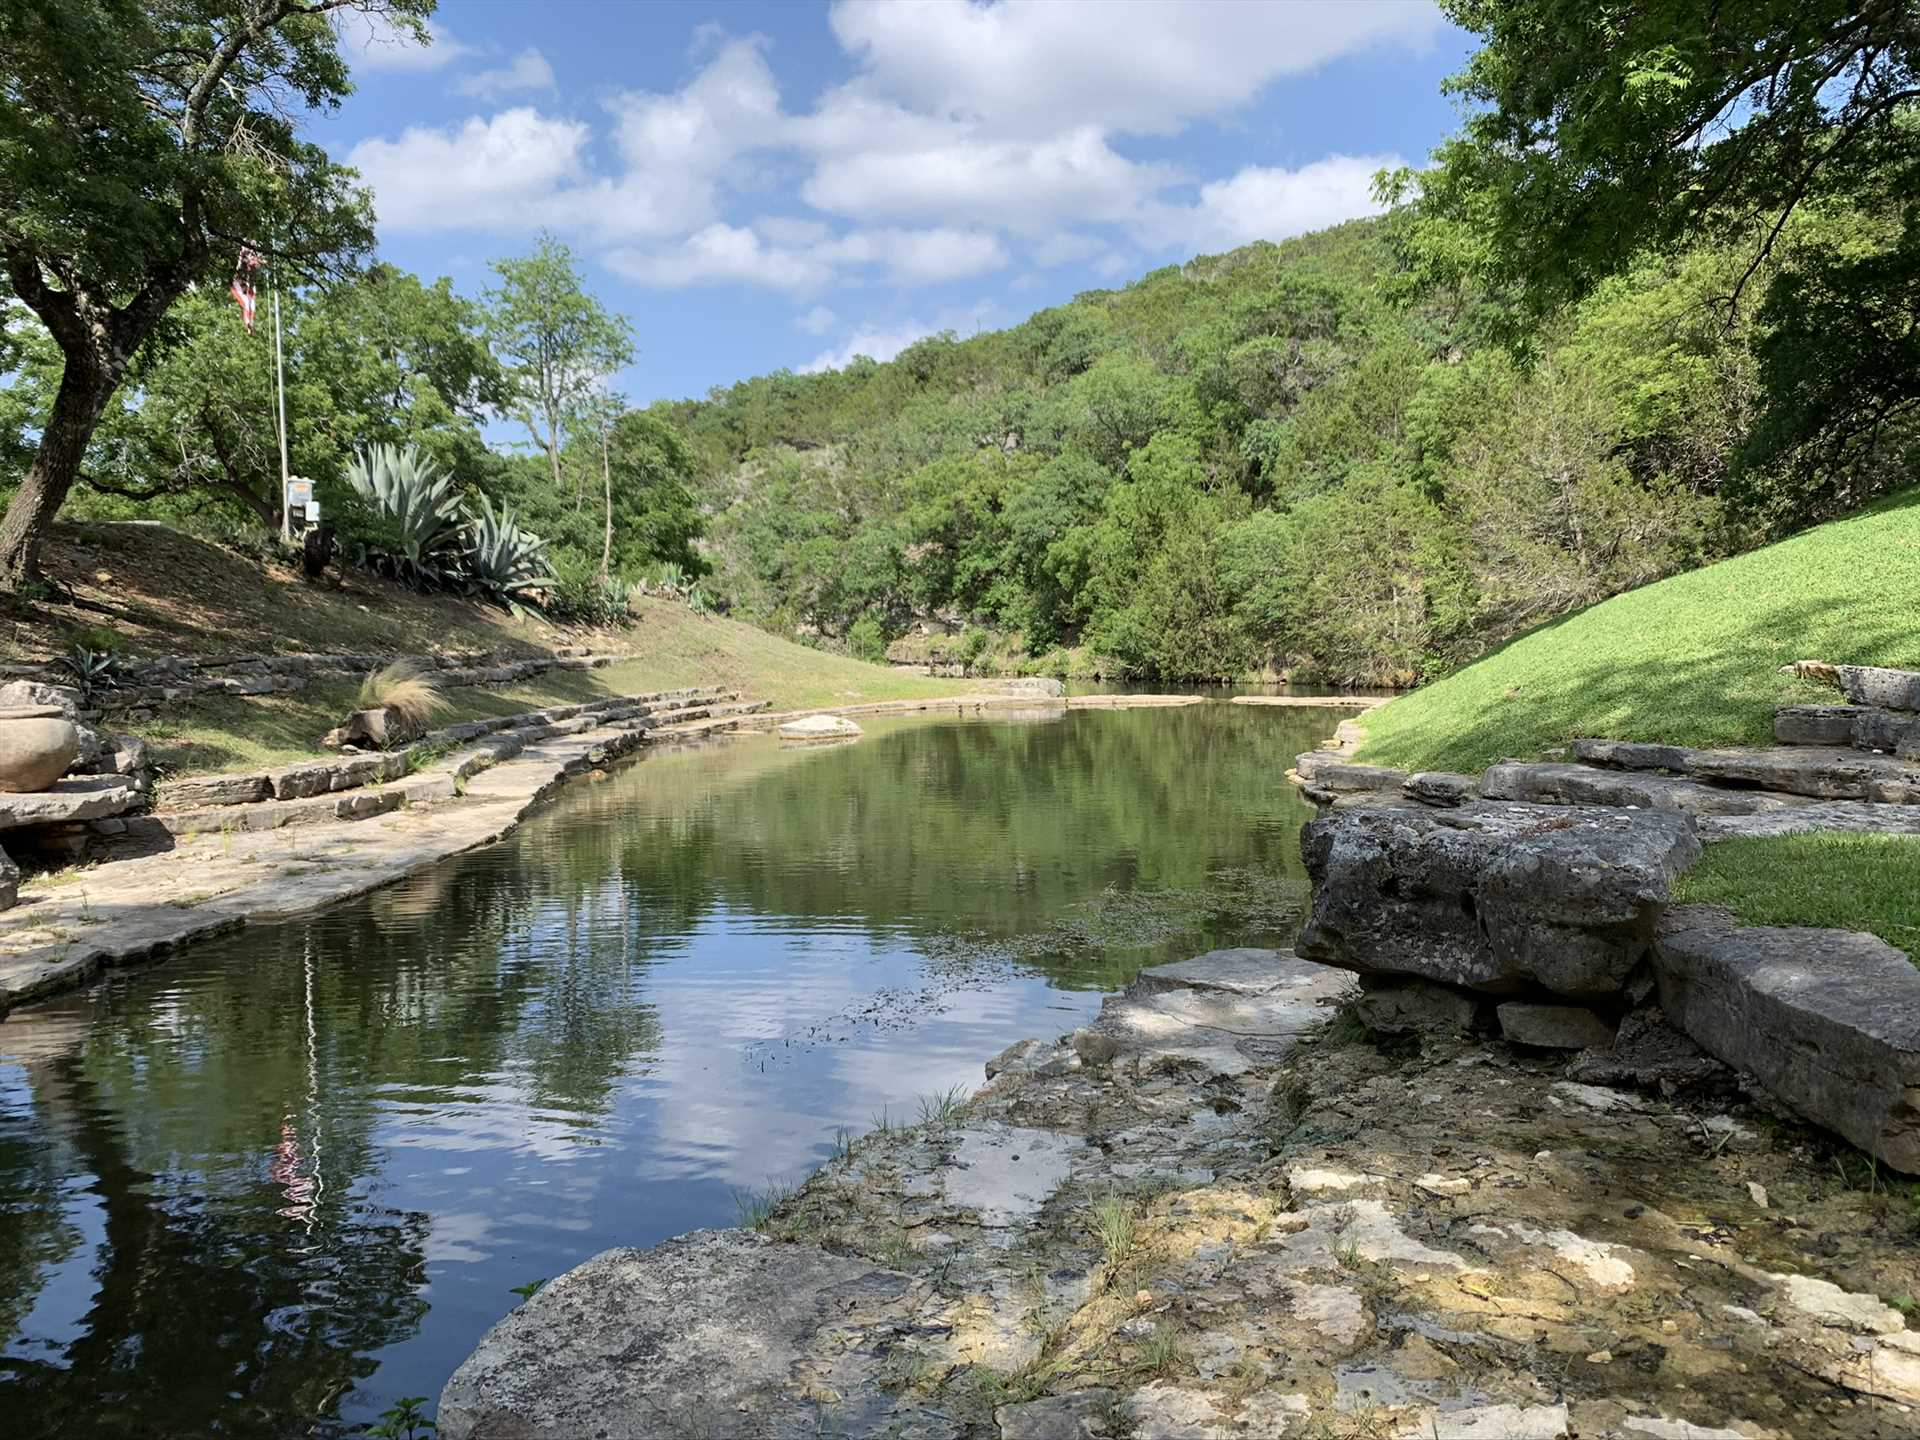 While the scenery is beautiful year round, water activities may be limited due to seasonal creek depth. Check with us before your stay for details.